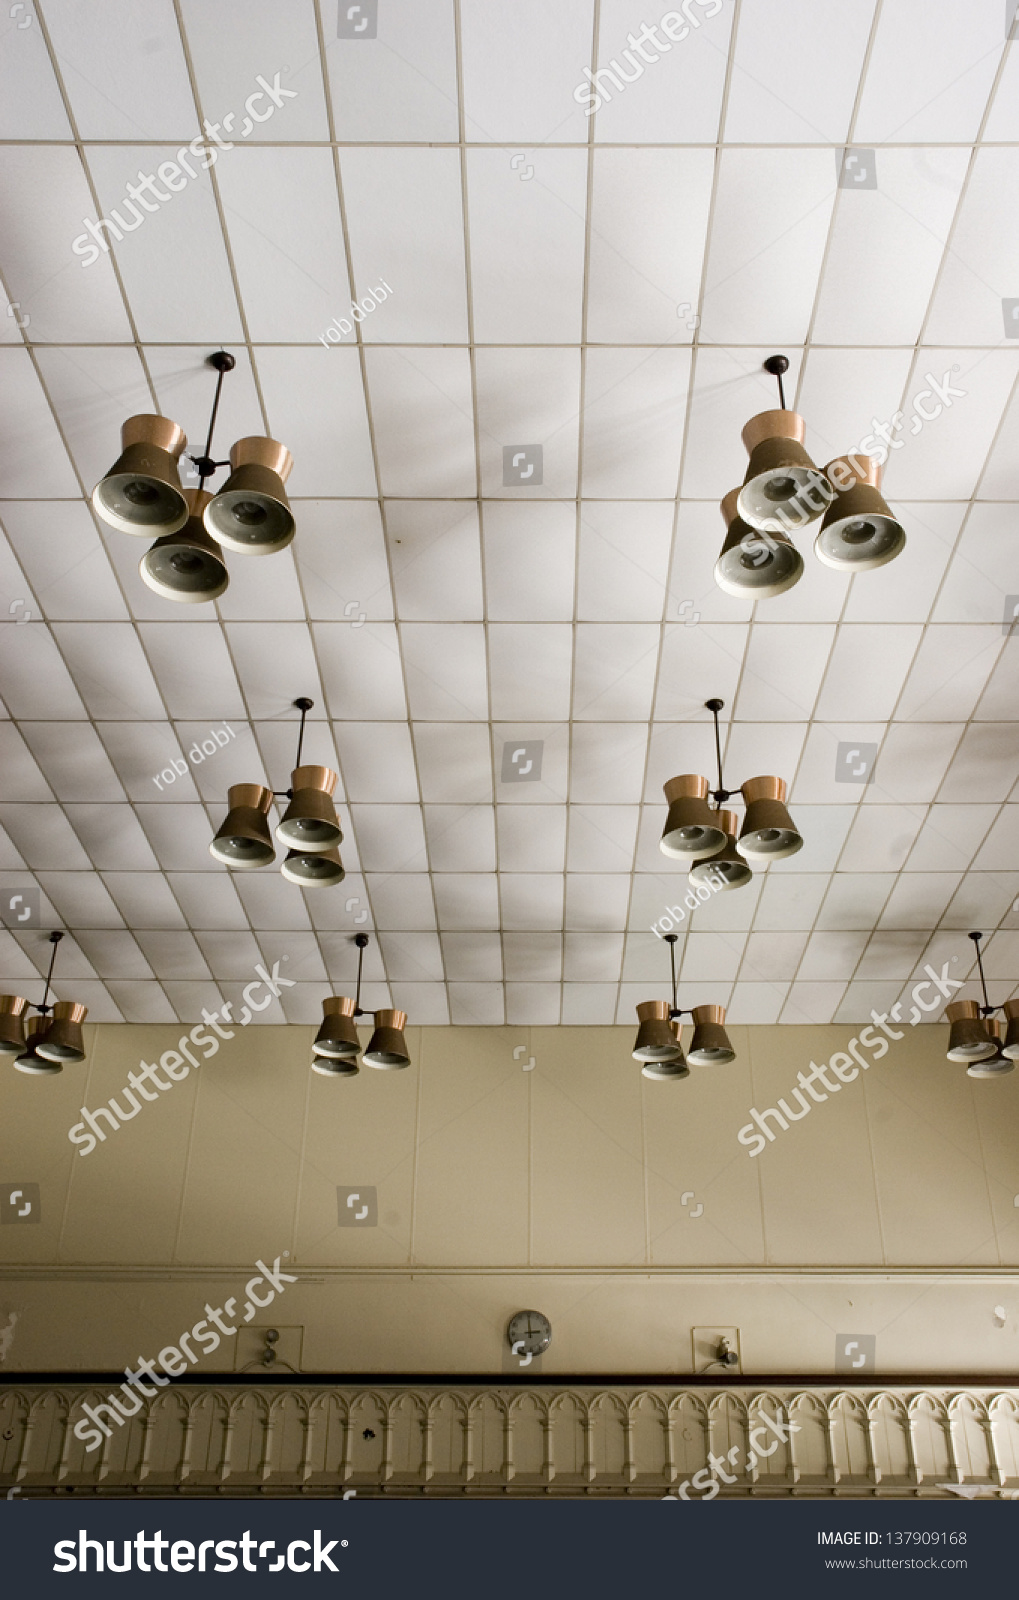 Ceiling with light fixtures inside an abandoned school